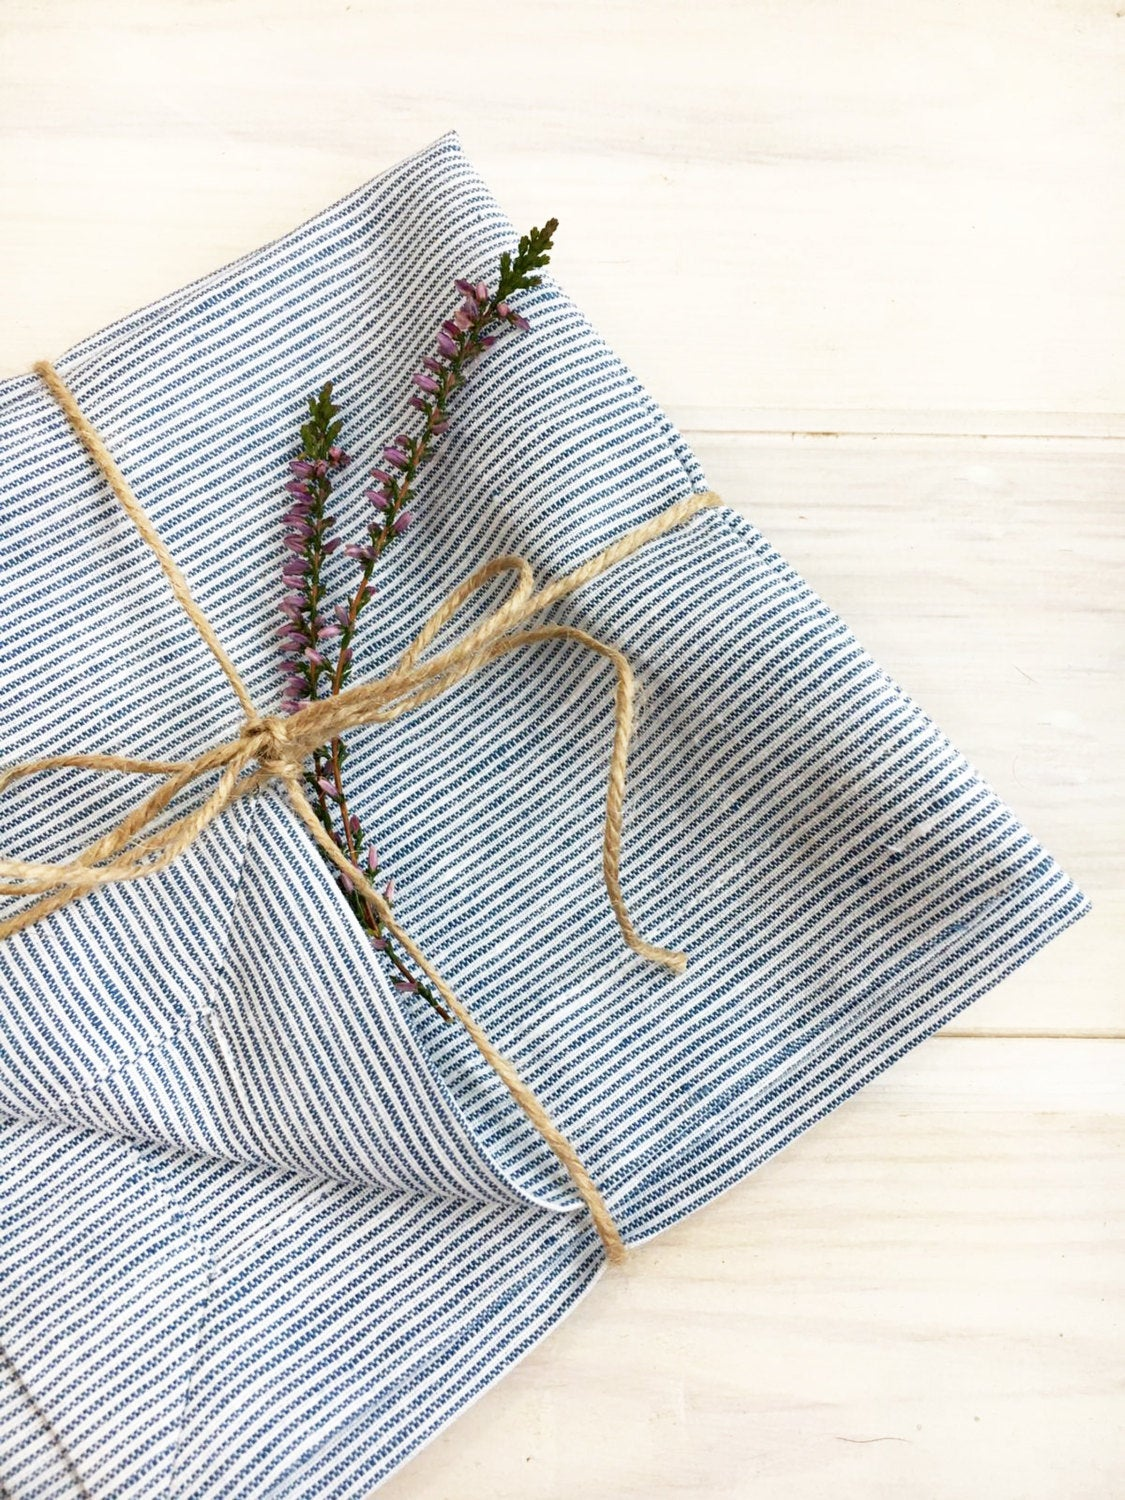 Linen Napkins, Set of 8 white and blue striped cloth napkins, cloth napkins, cloth wedding napkins, navy striped napkins by Linenbee